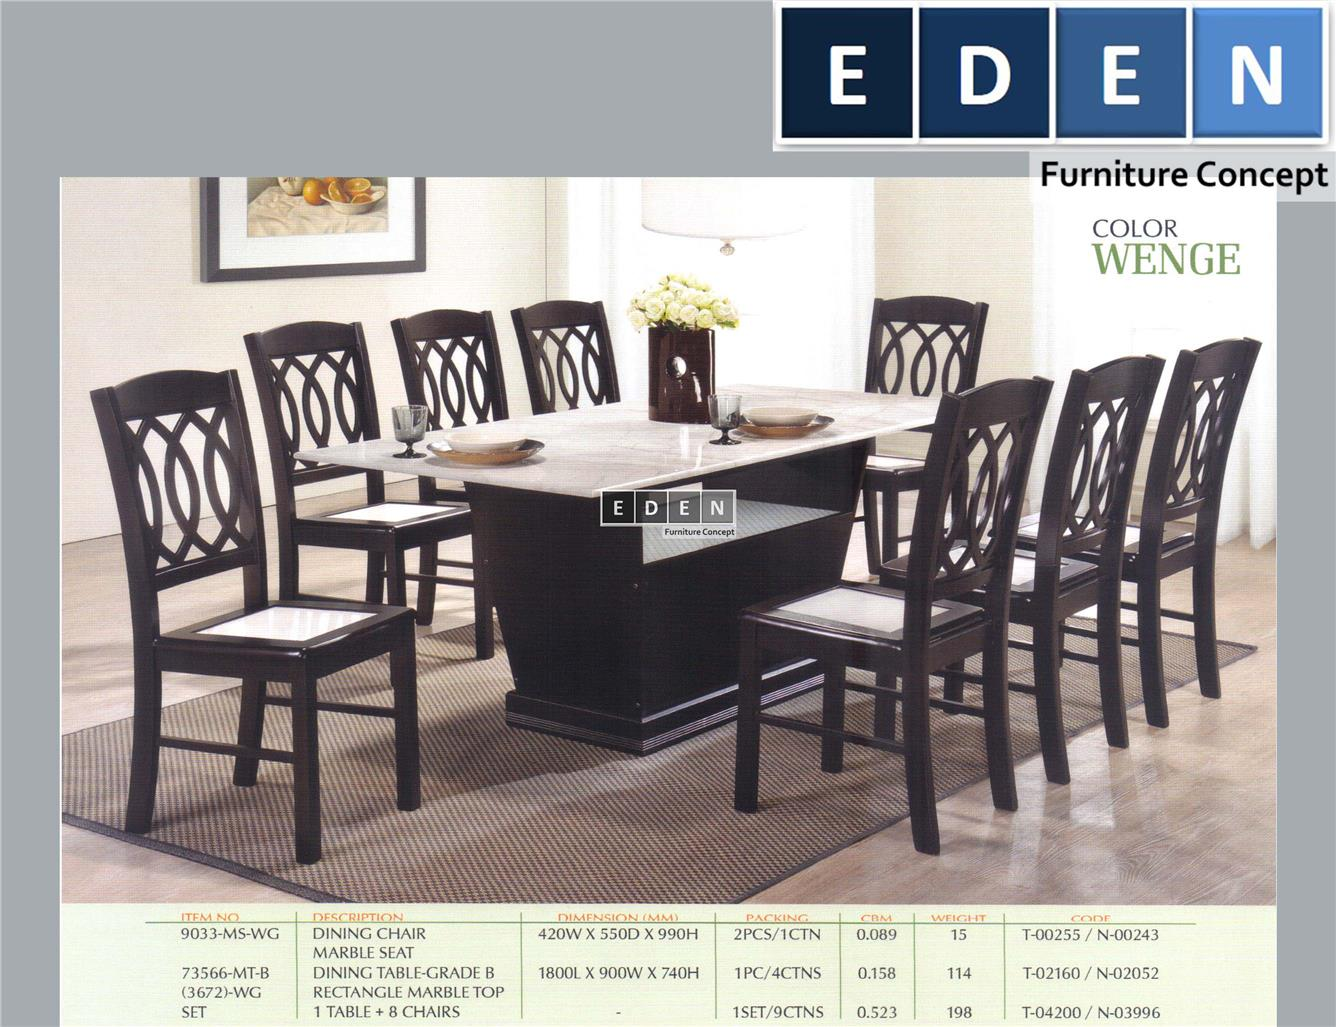 Marble Top Dining Table Set Malaysia Thepinksquirrels : furniture malaysia kitchen dining table meja makan 73566s kykstore 1506 04 KYKstore4 from thepinksquirrels.com size 1336 x 1027 jpeg 192kB